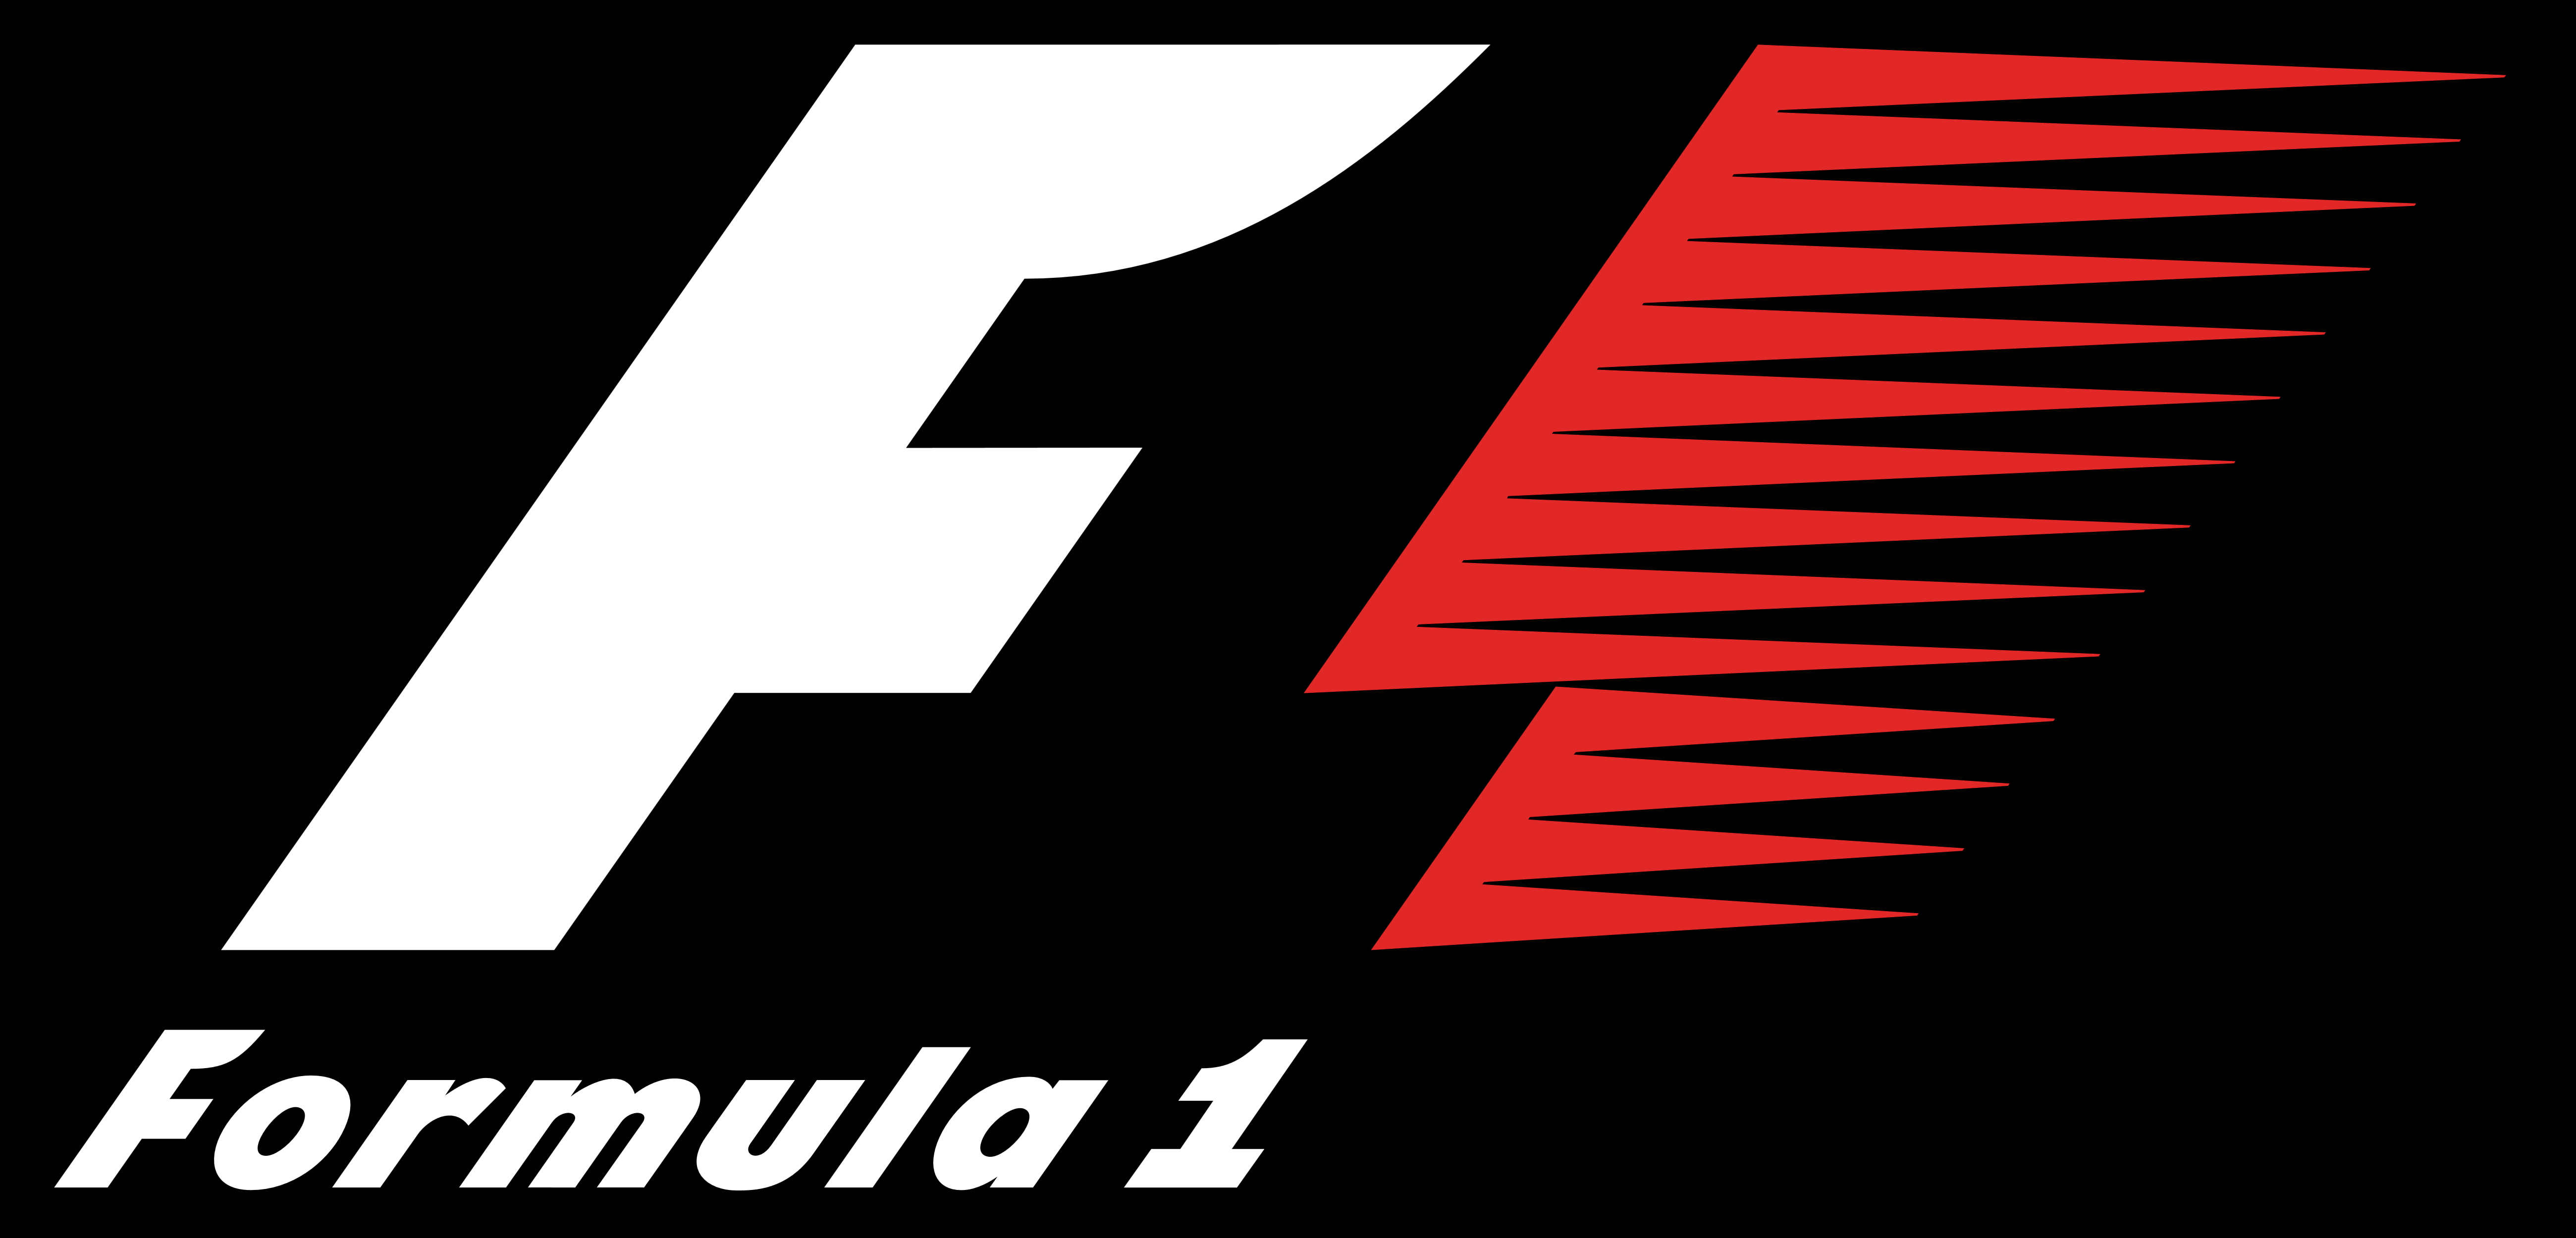 Formula 1 Black Background Logo Wallpaper